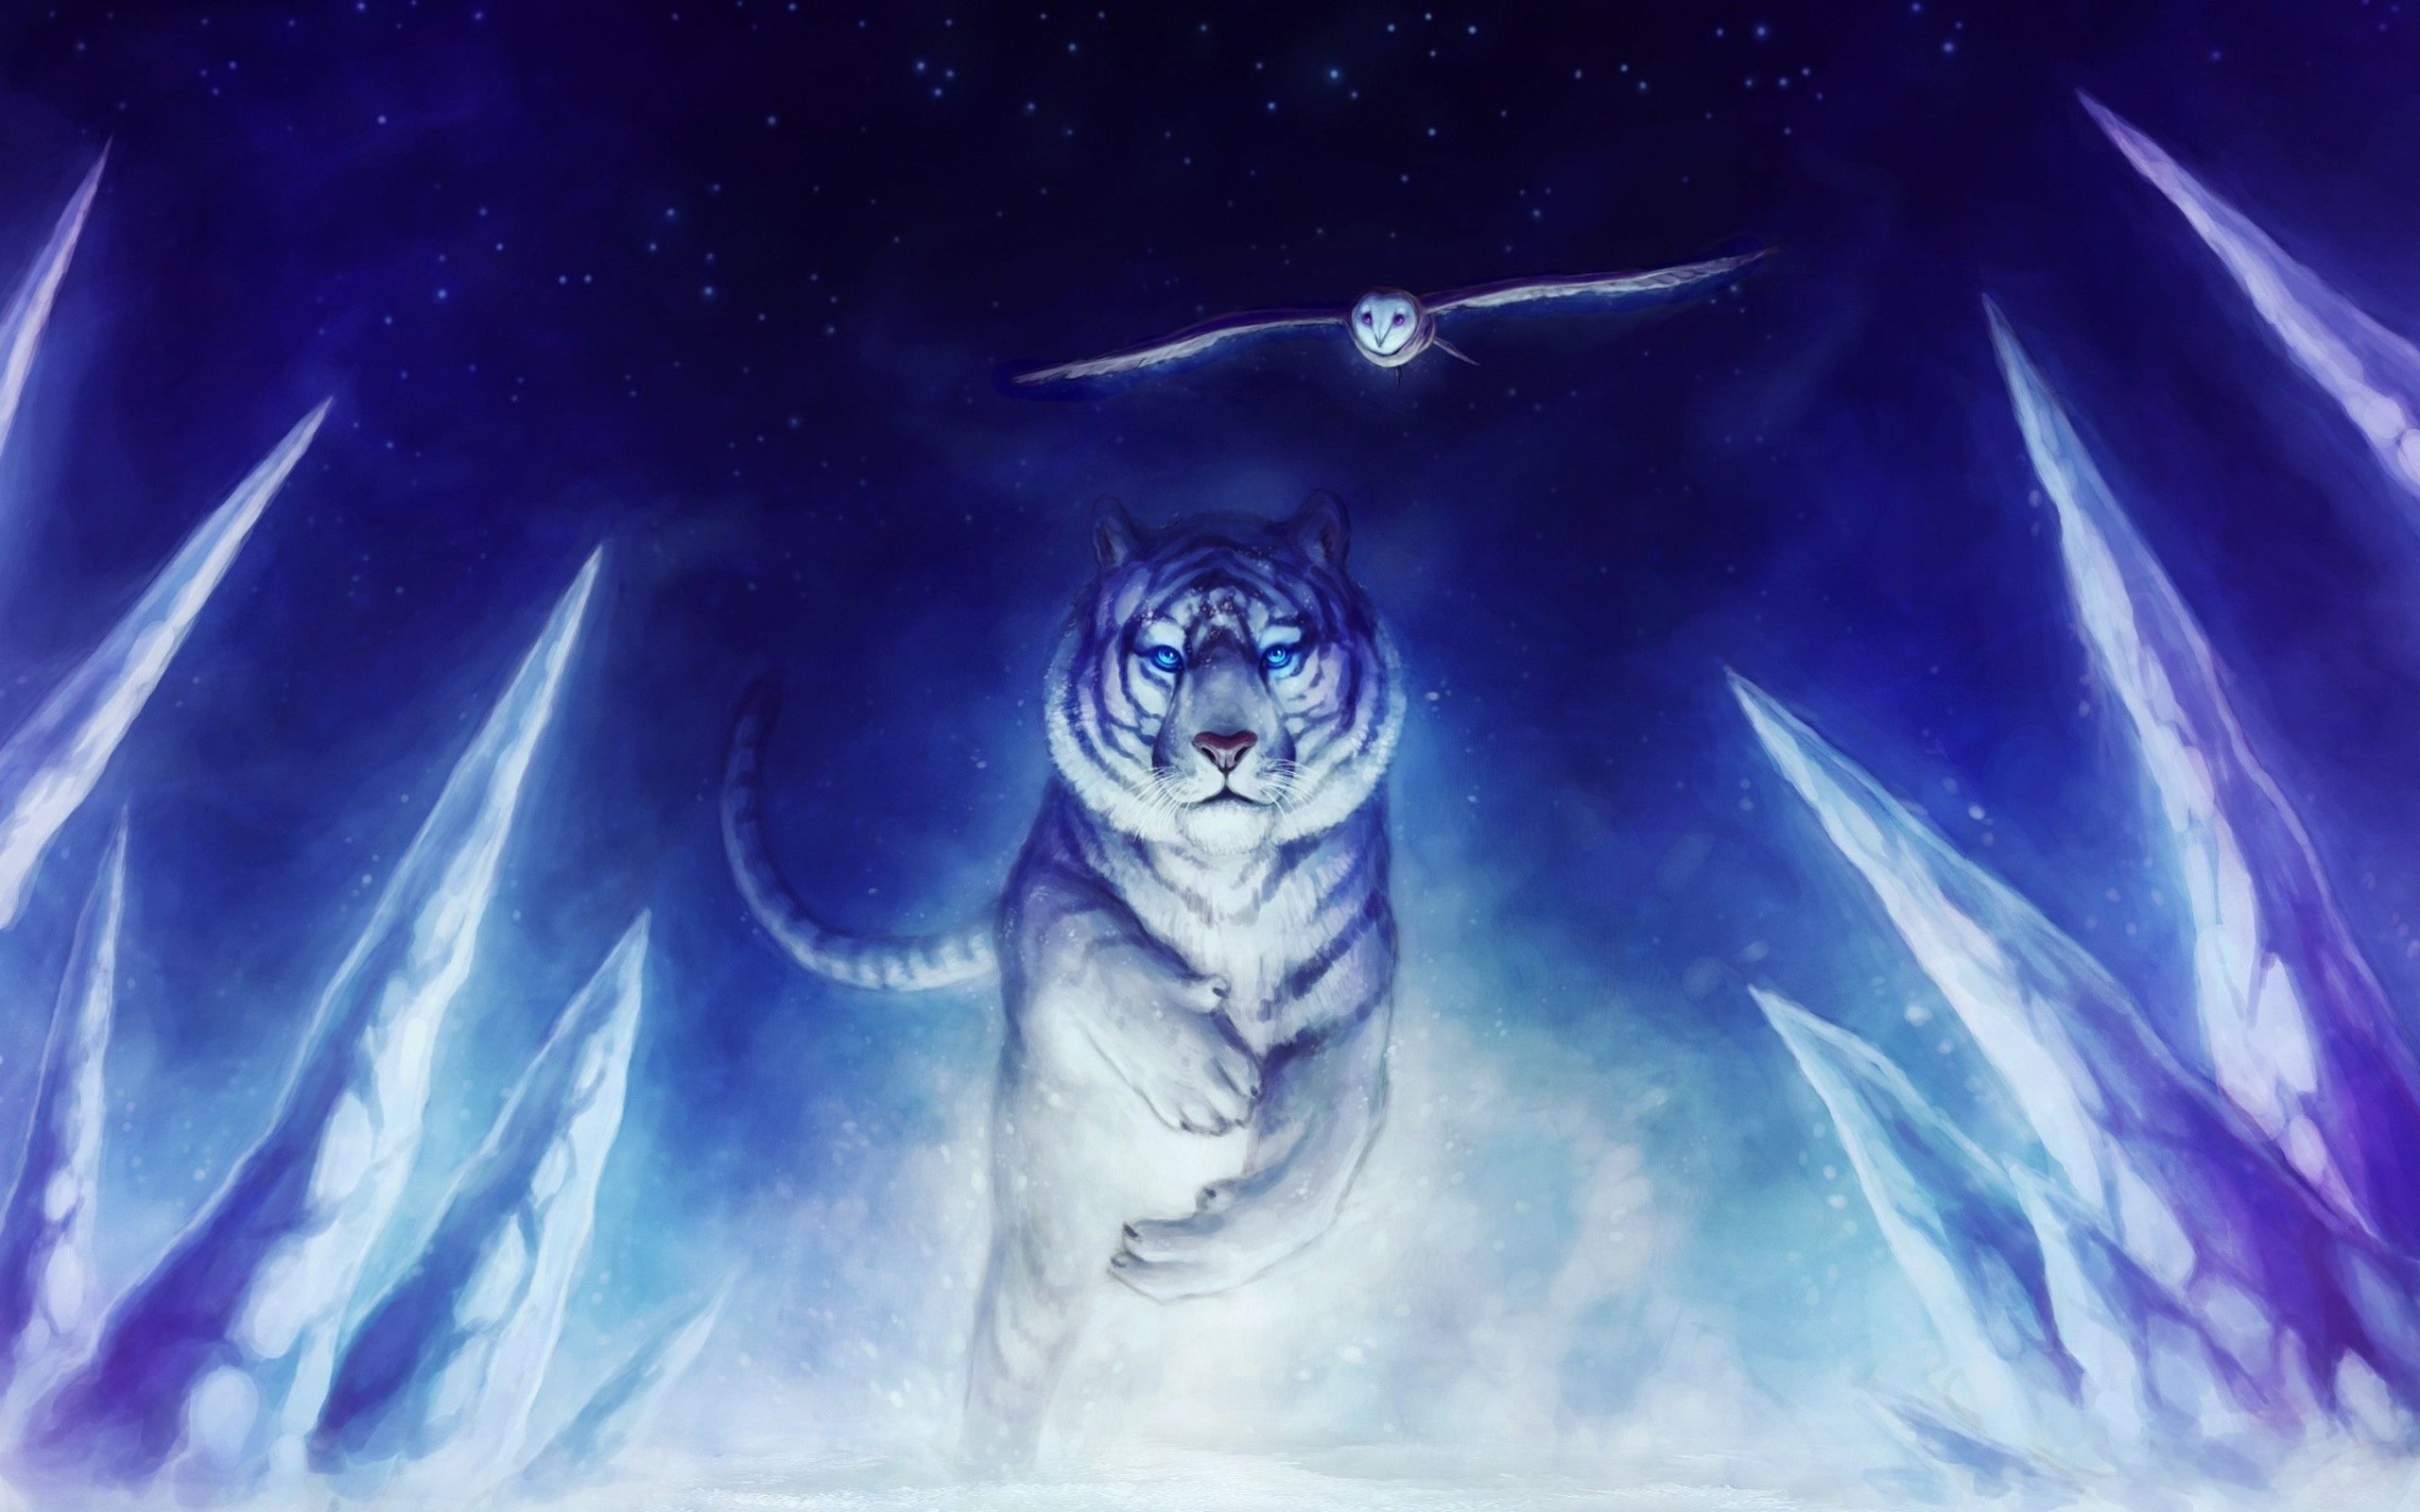 tiger hd images free download